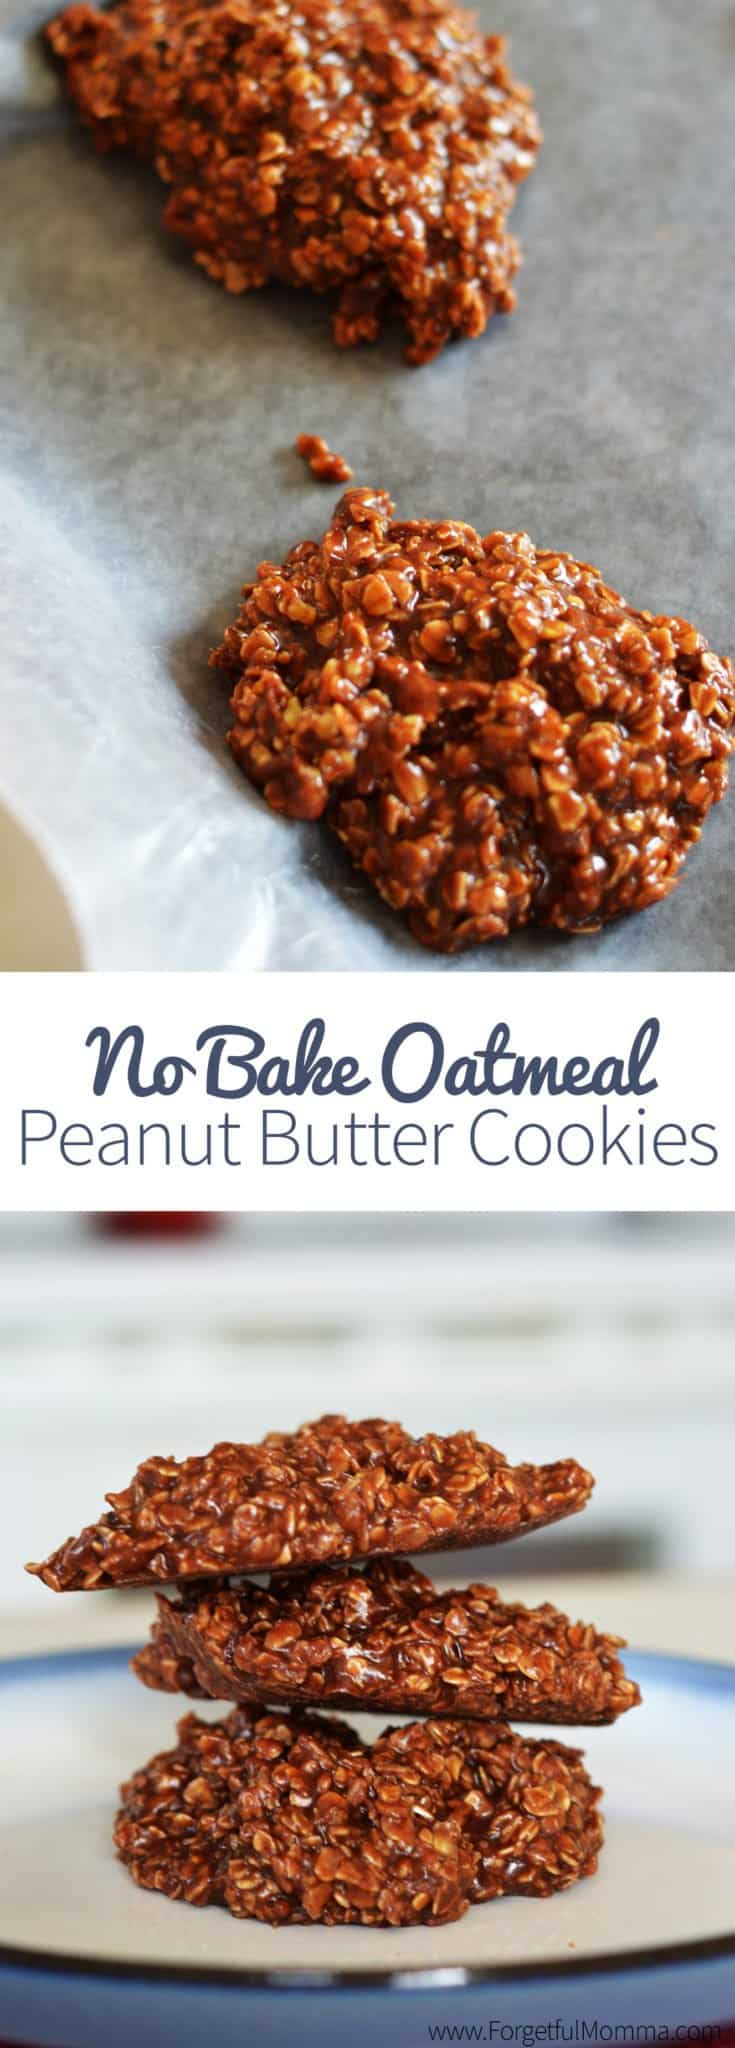 No Bake Oatmeal Peanut Butter Cookies